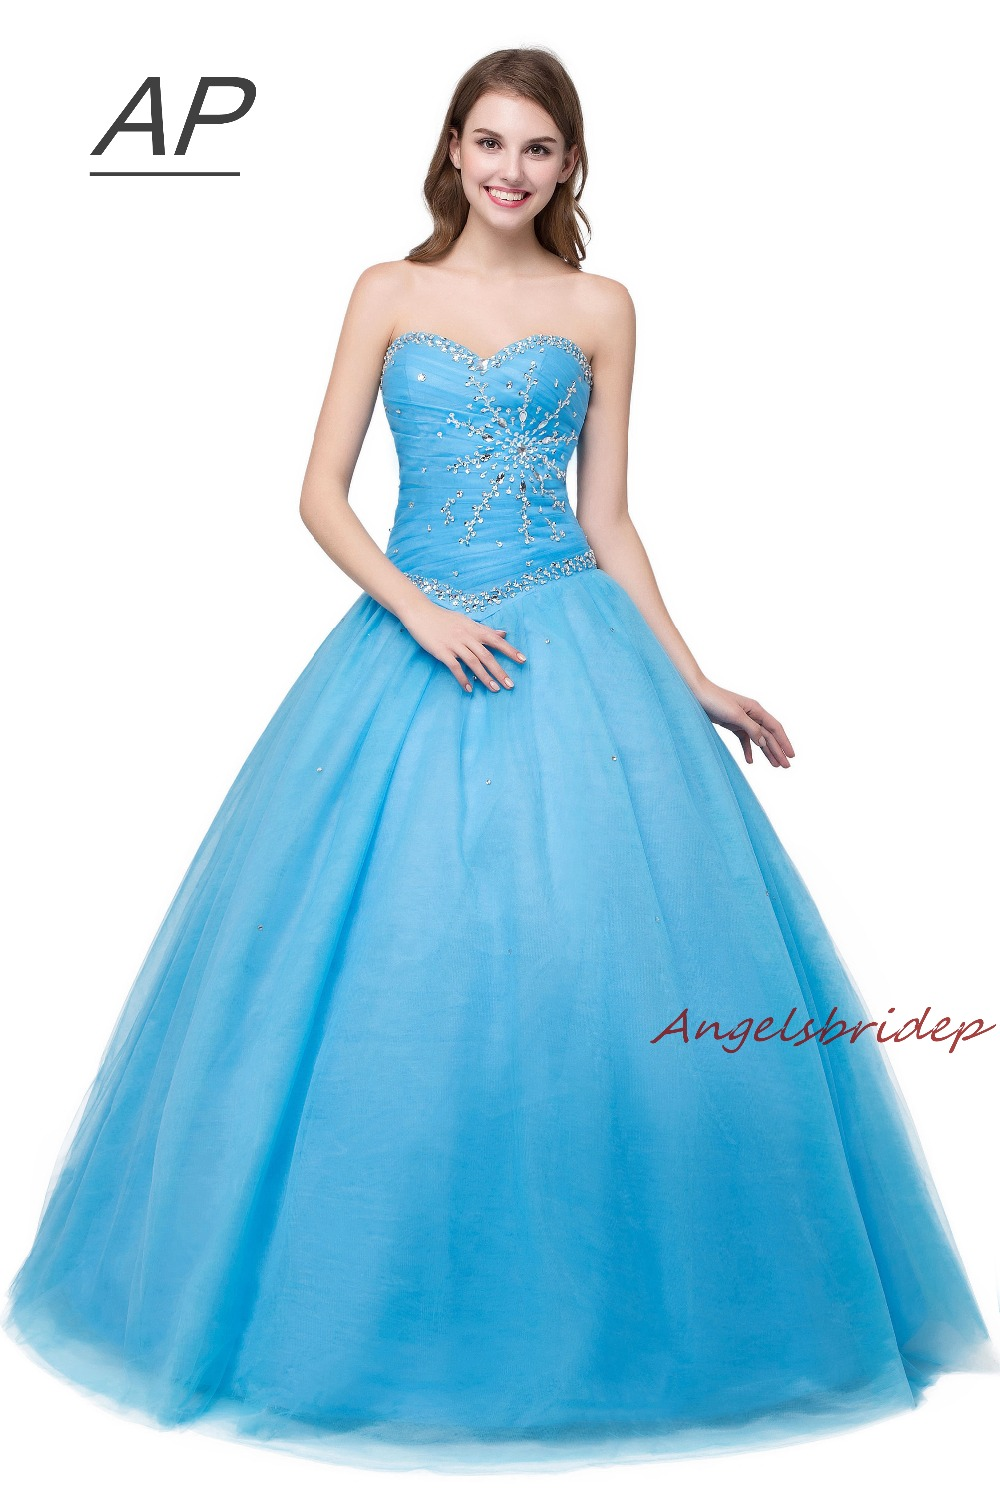 ANGELSBRIDEP Luxury Sweet 16 Ball Gowns Quinceanera Dresses Sweetheart Crystal Vestidos De Debutante Curto Formal Party Gown Hot